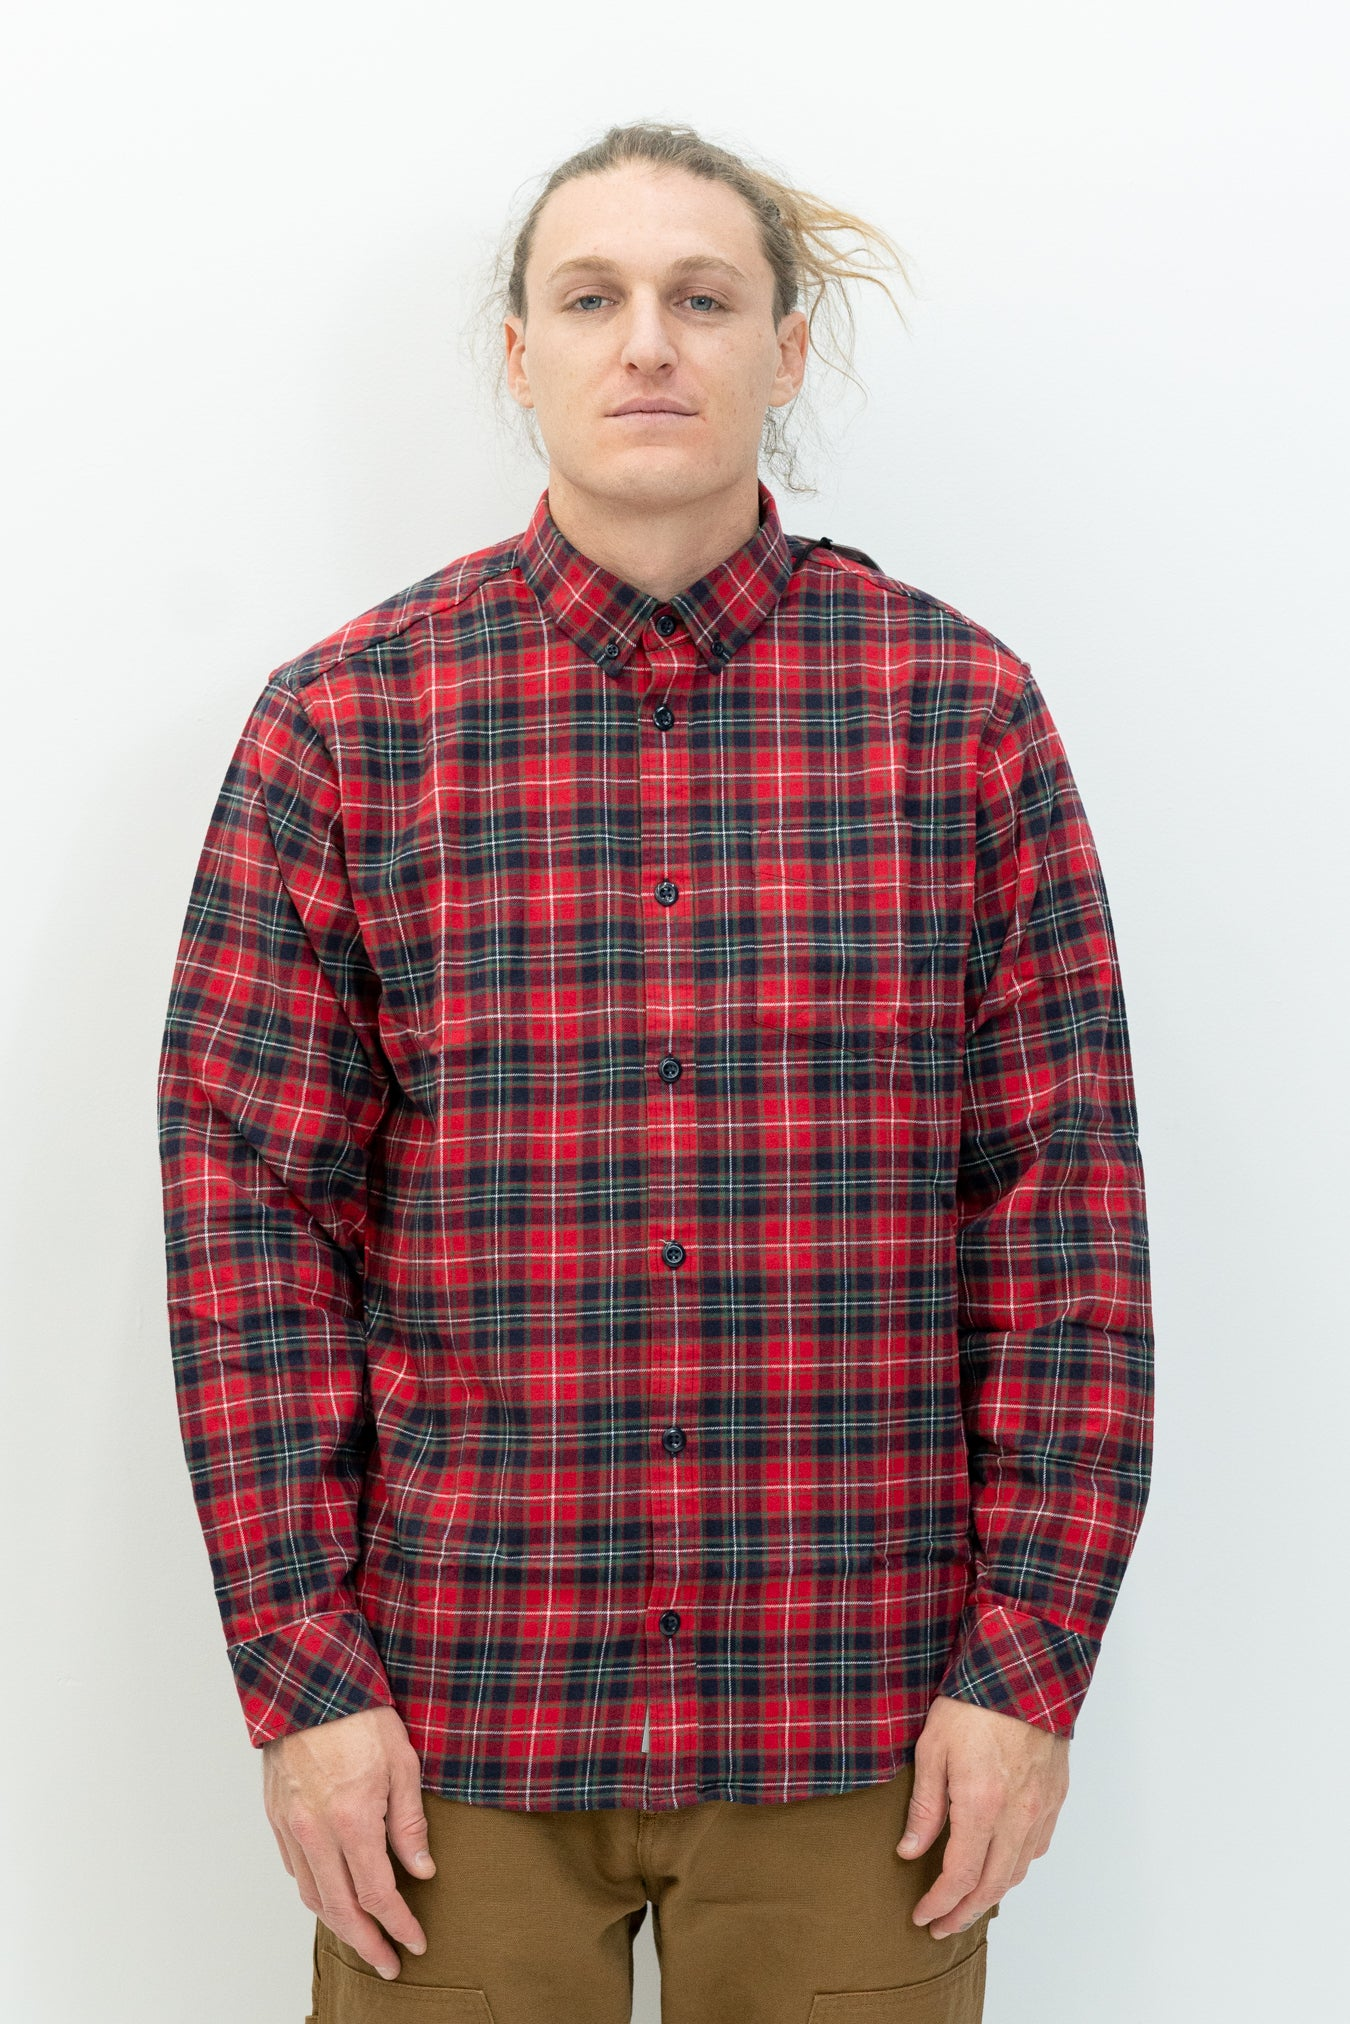 L/S Huffman Shirt in Rocket